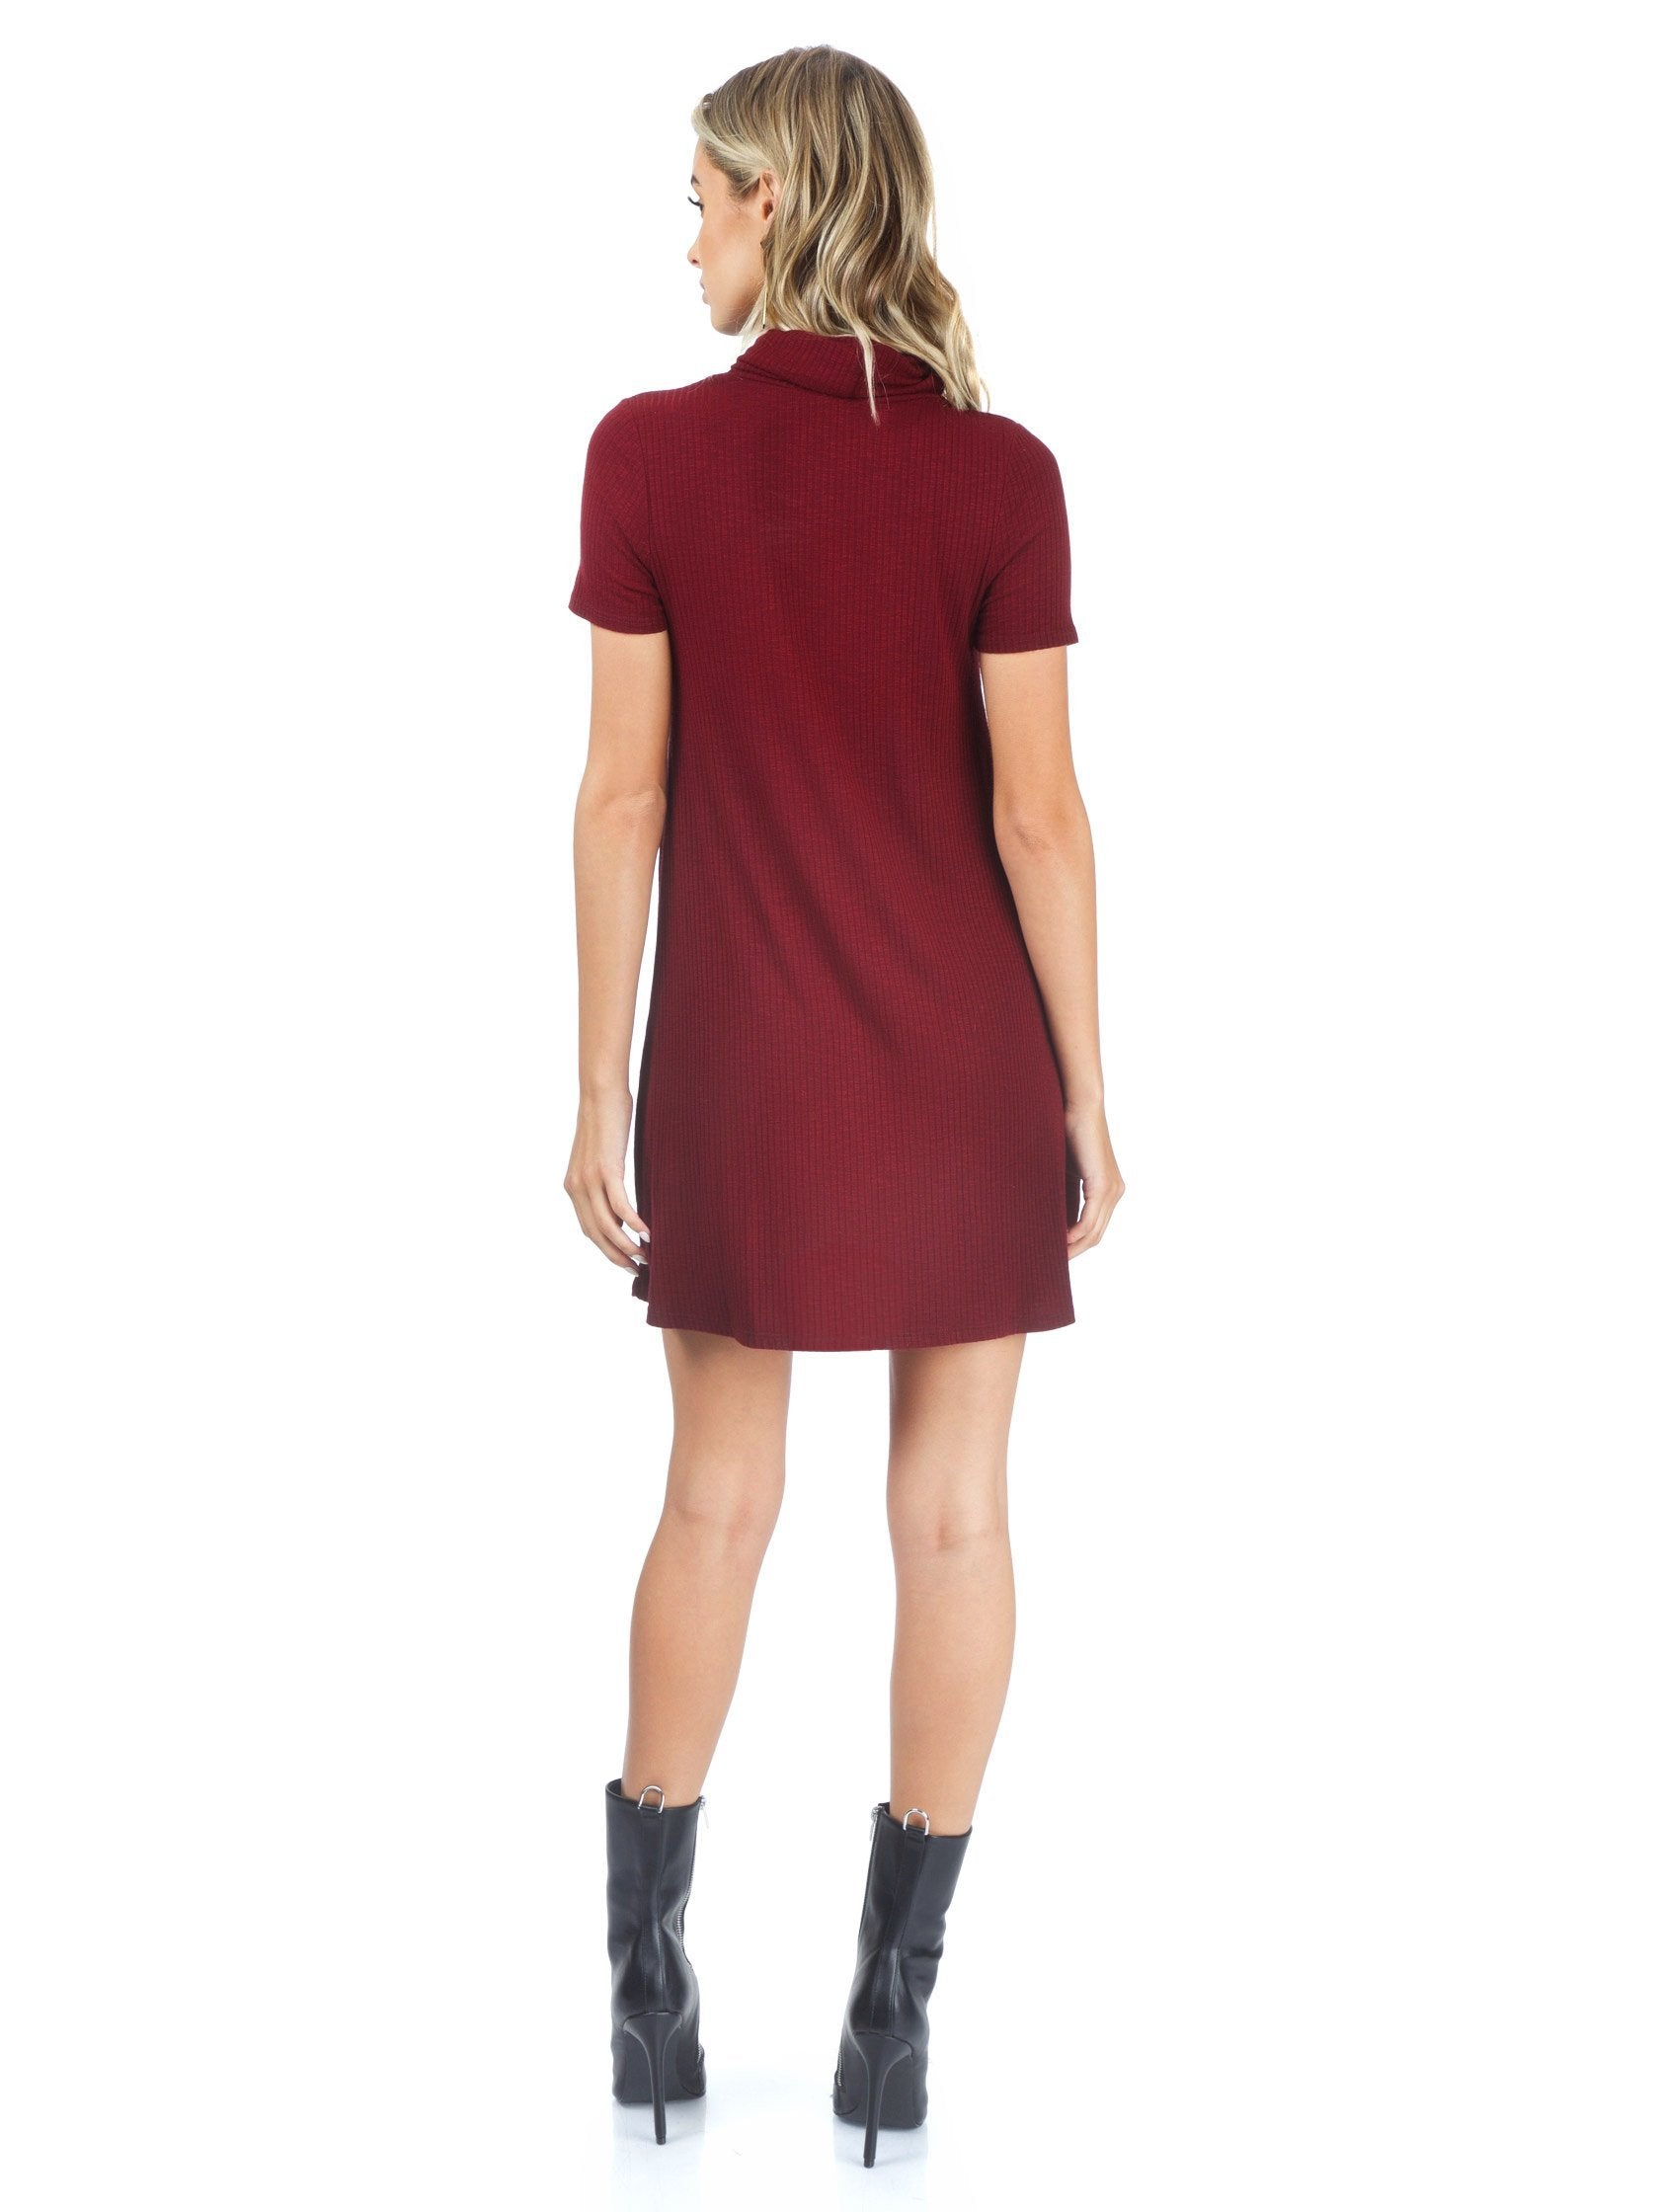 Women wearing a dress rental from AQUA called Ribbed Knit Neck Cowl Dress